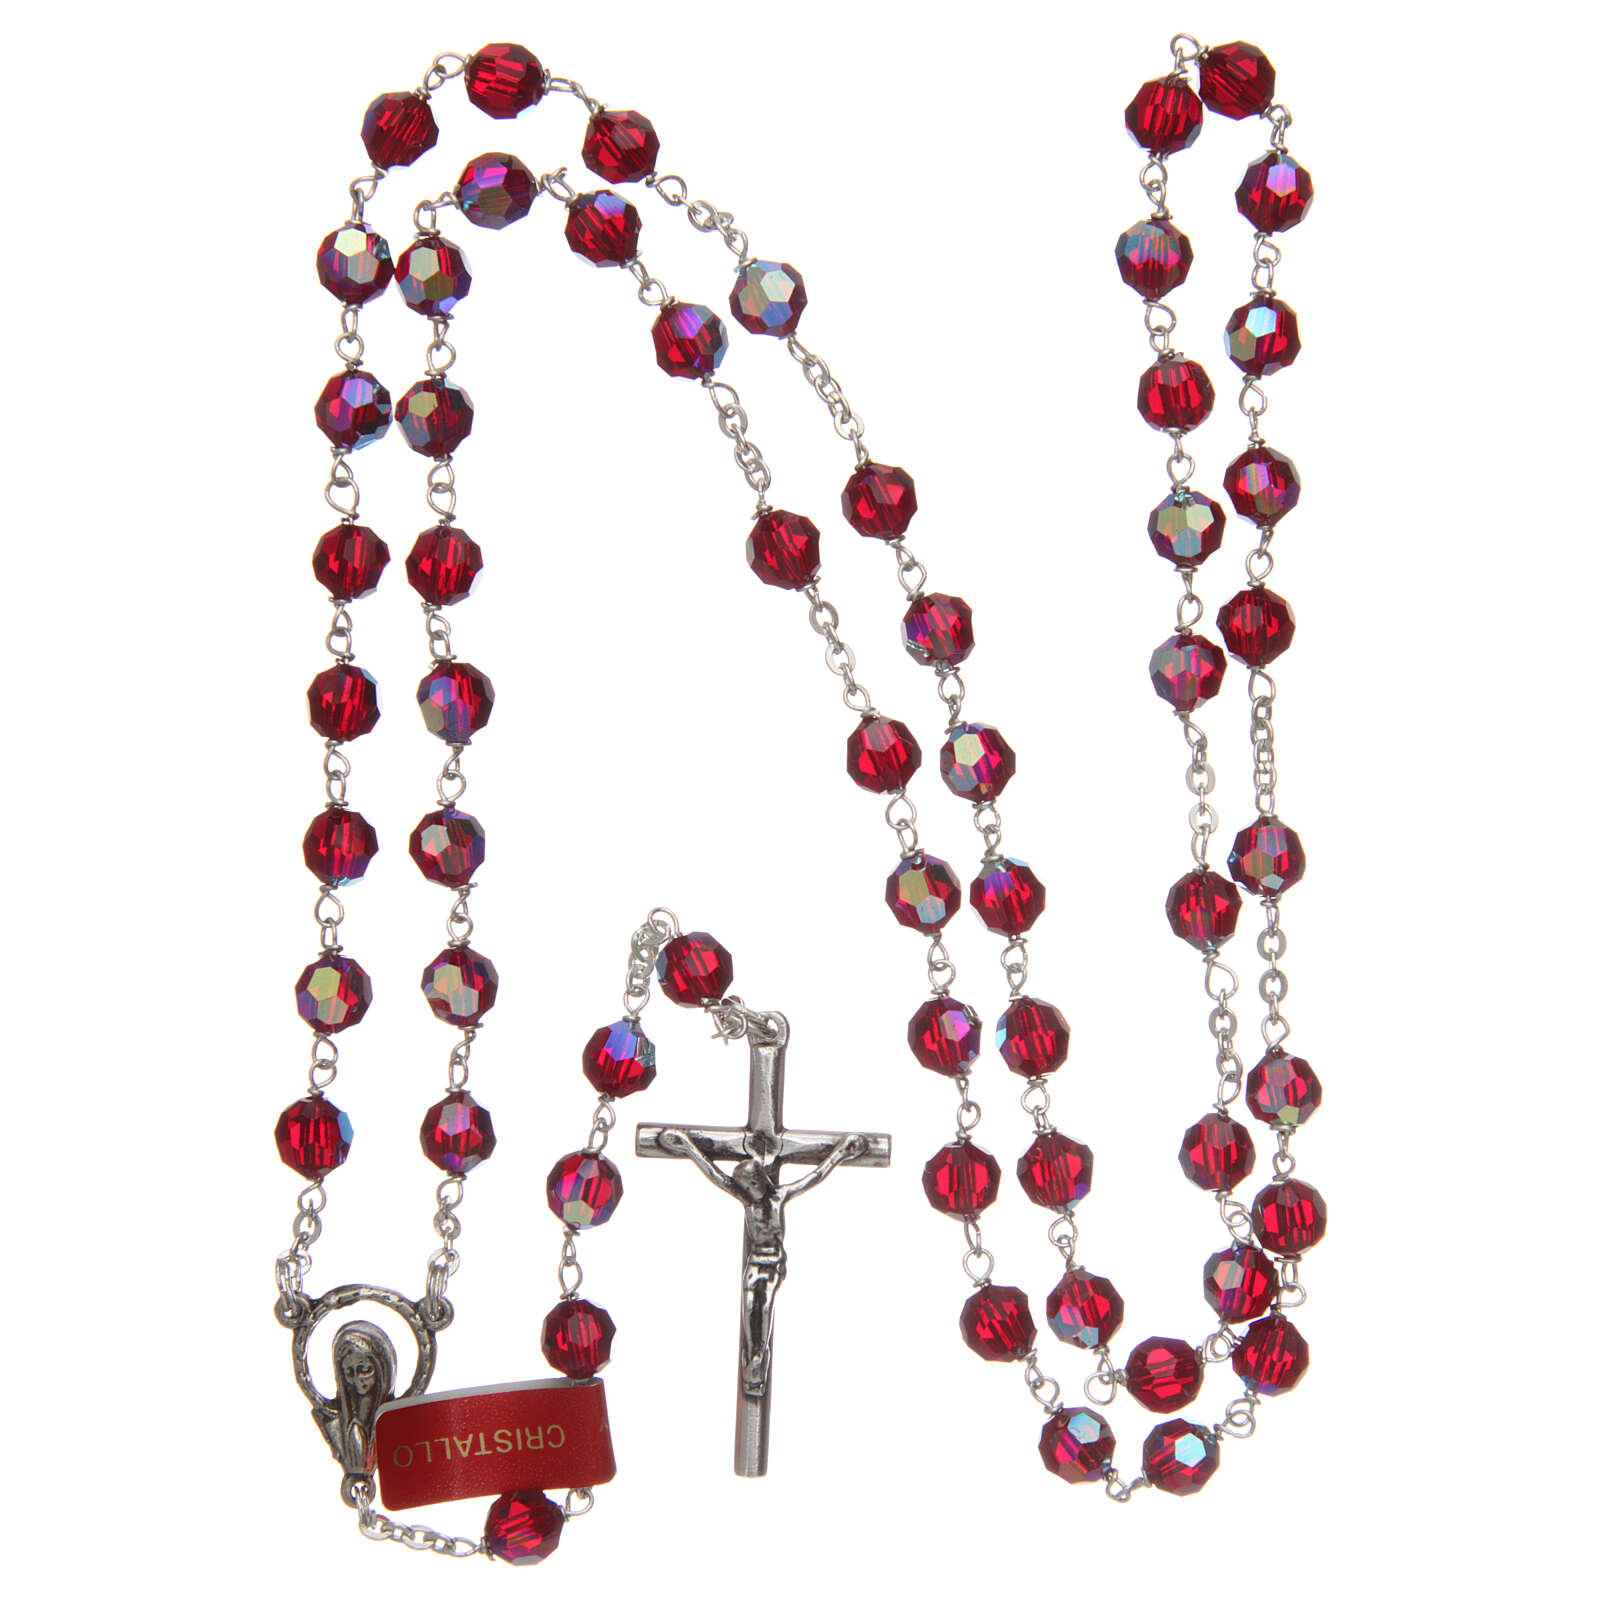 Crystal rosary garnet 6 mm silver chain 4